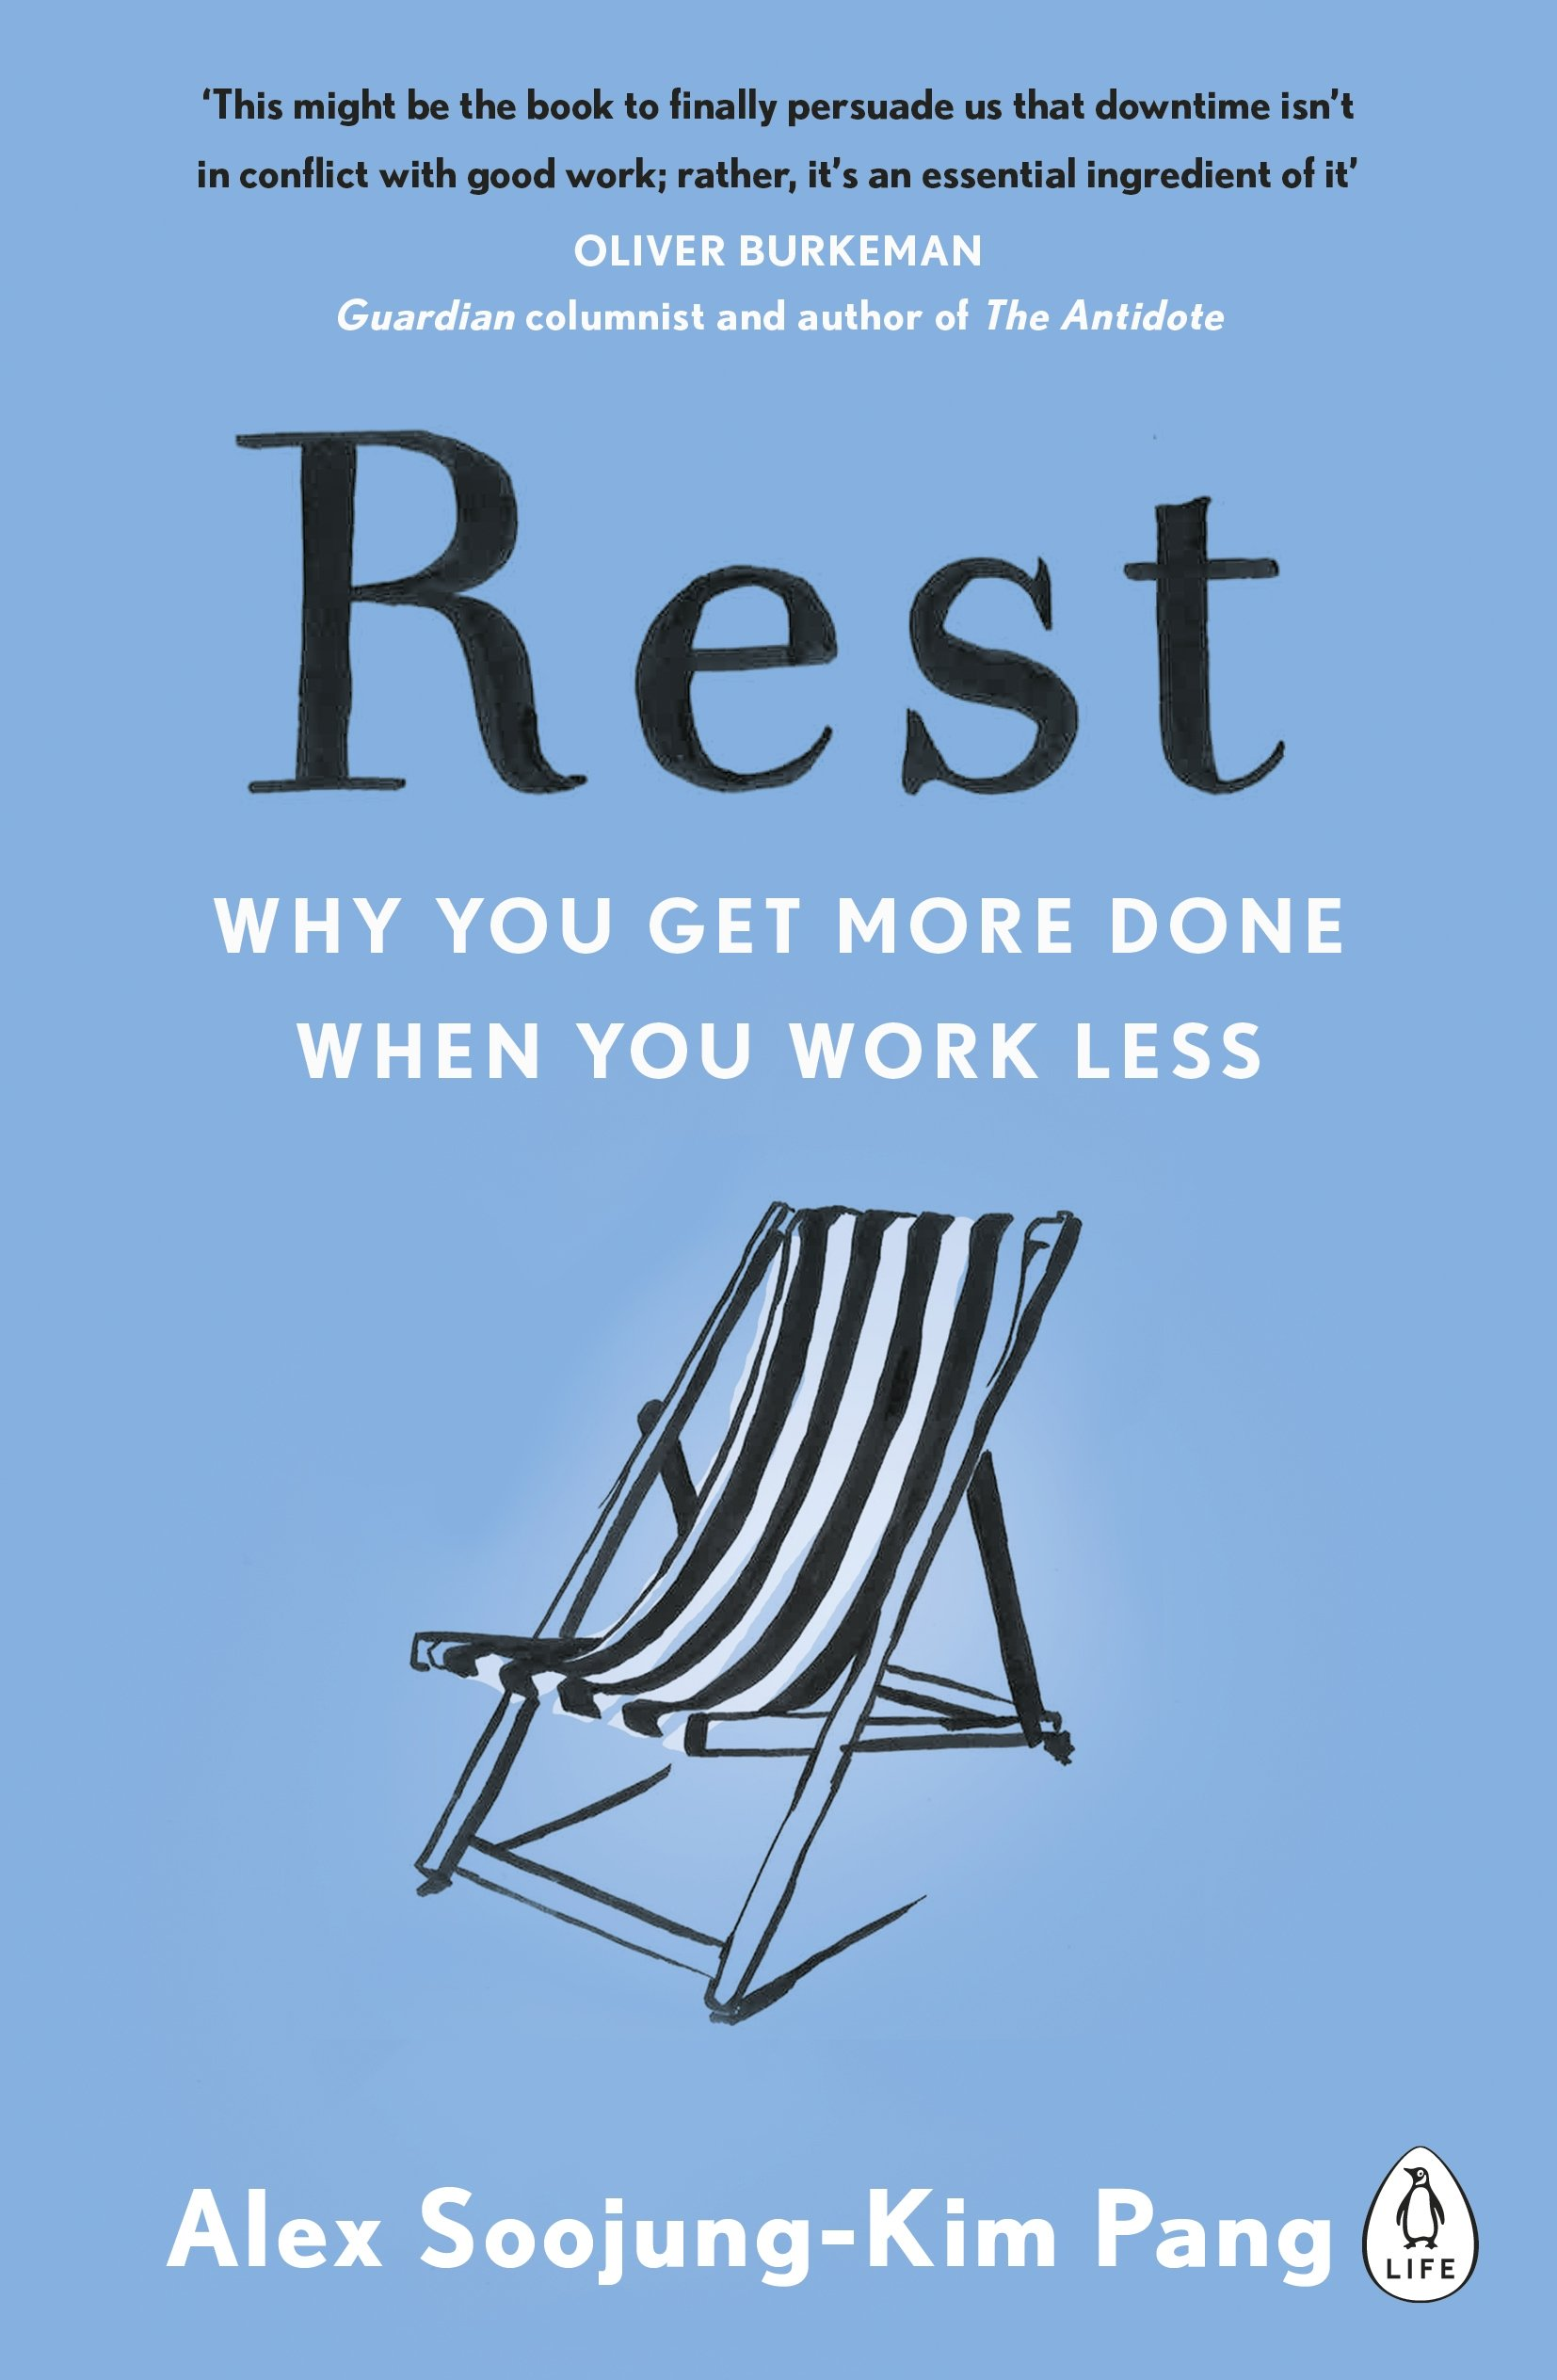 Rest: Why You Get More Done When You Work Less : Pang, Alex Soojung-Kim:  Amazon.co.uk: Books